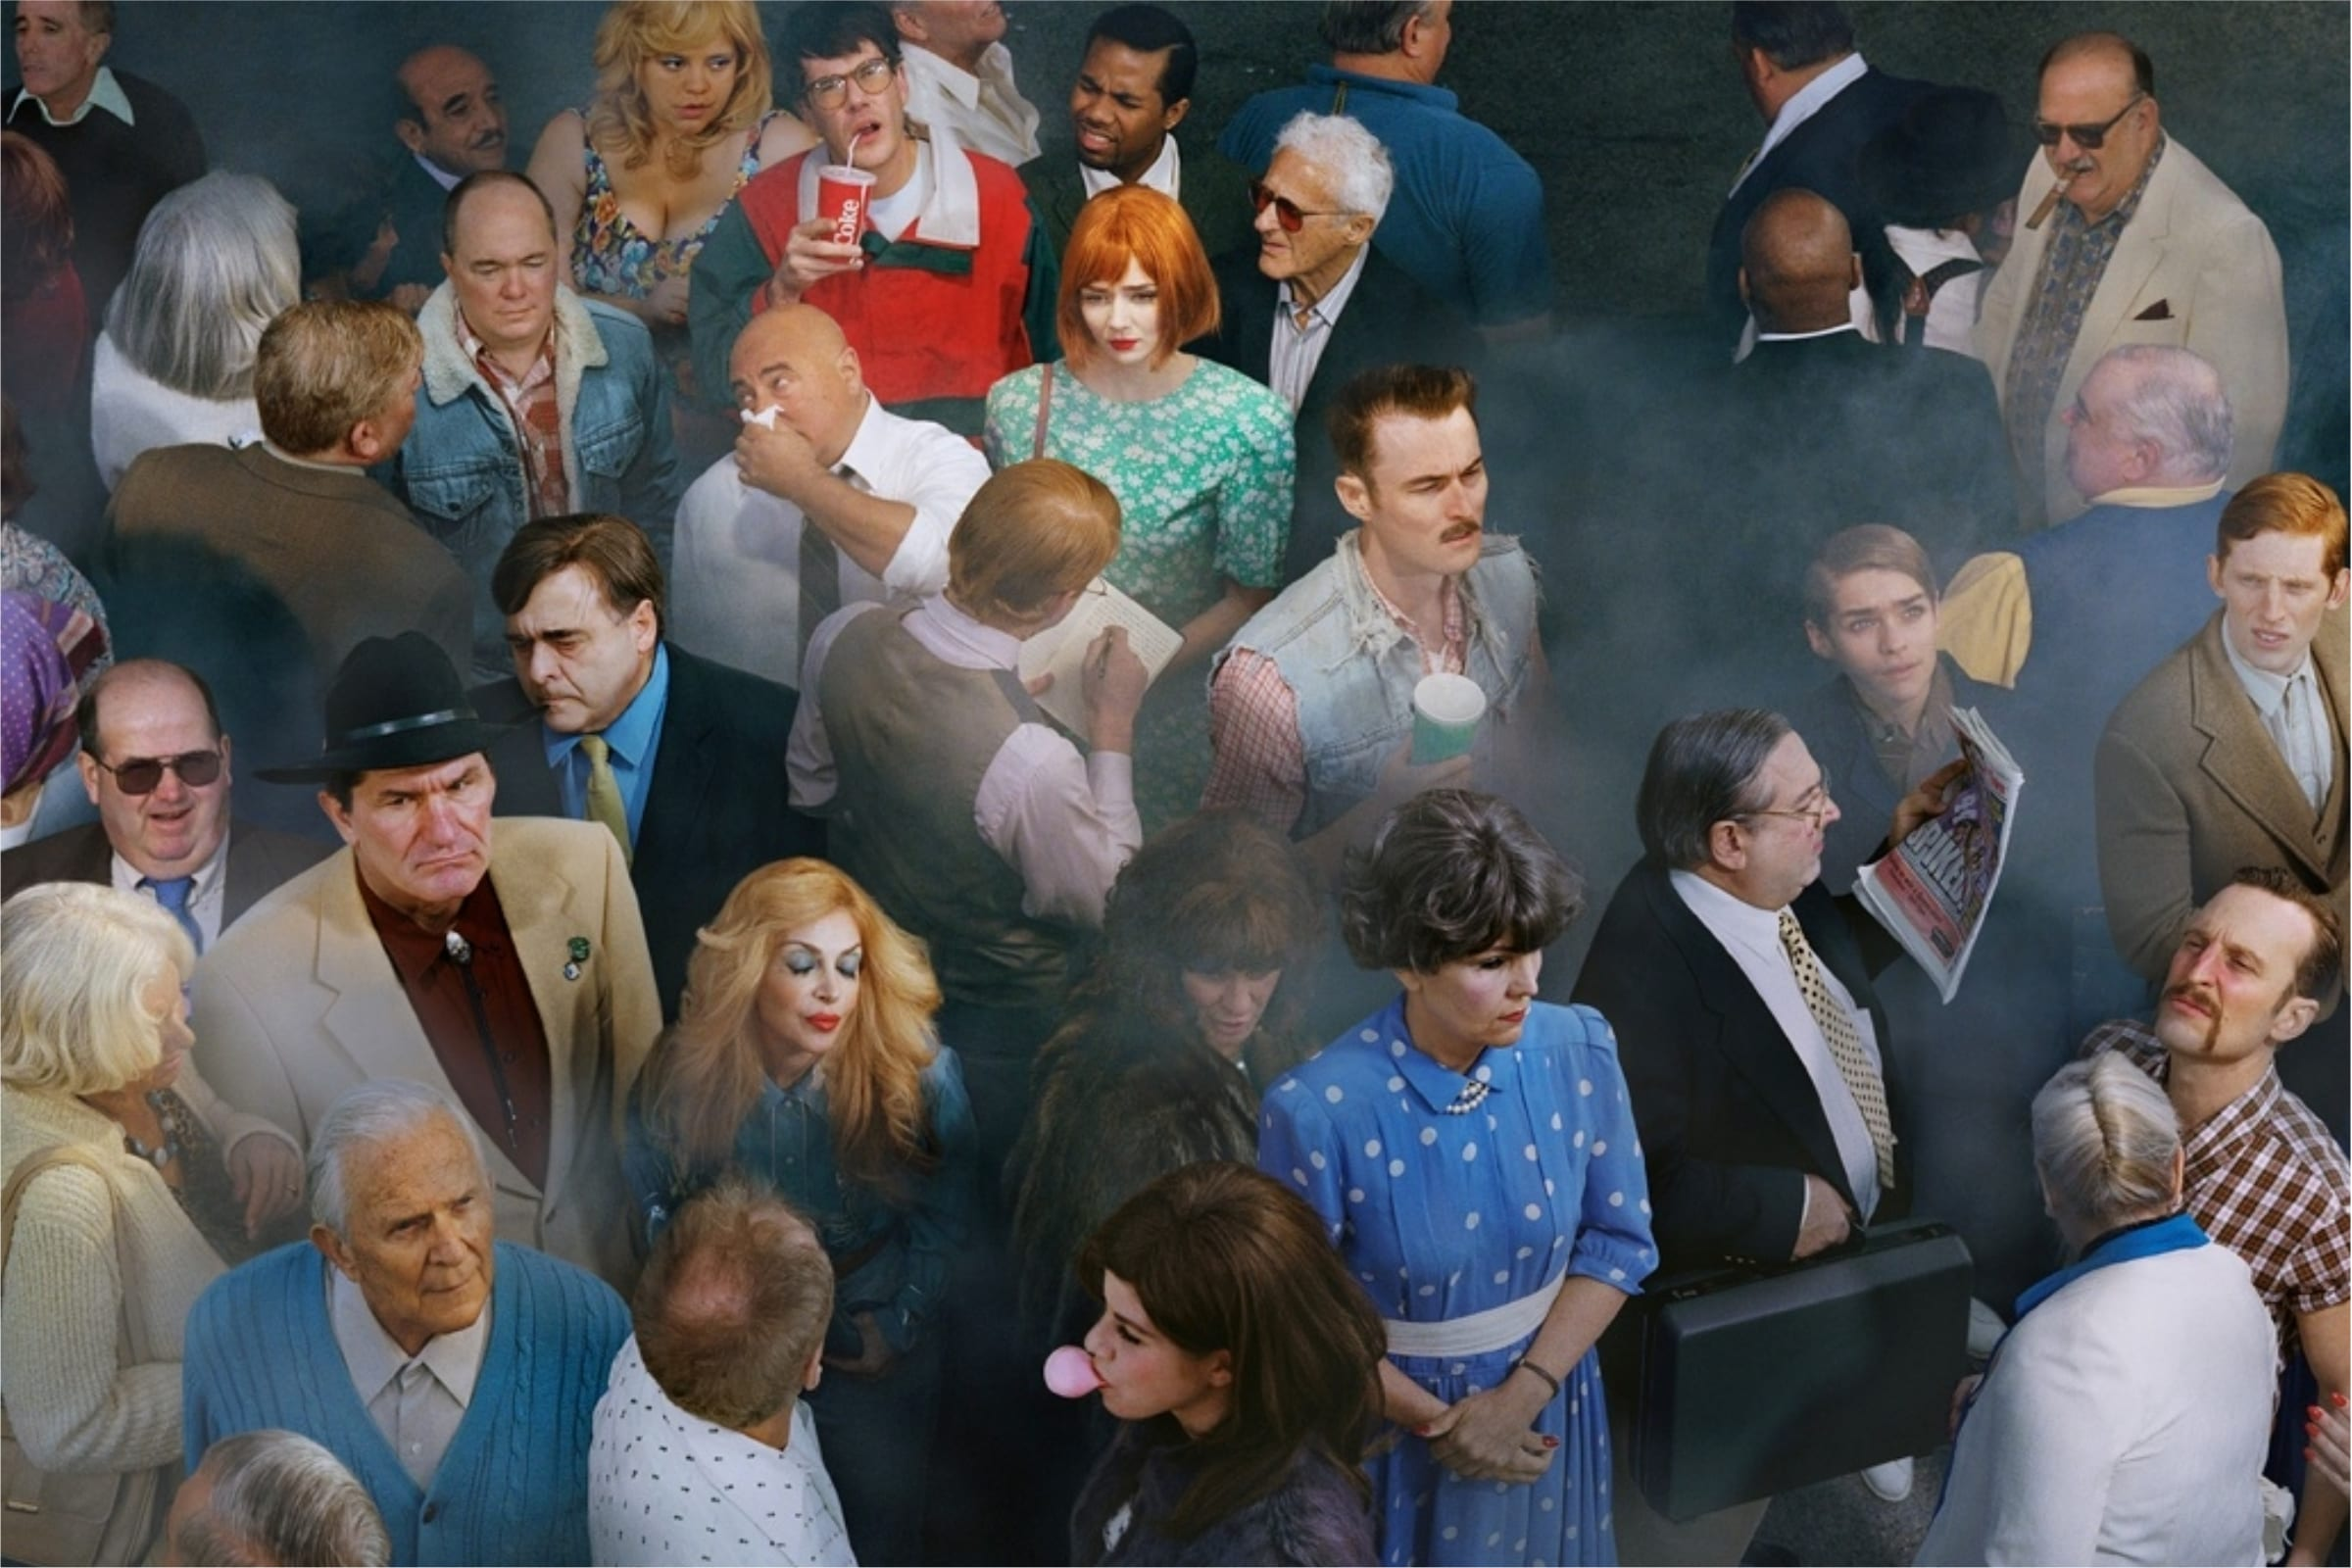 home-alex-prager-face-in-the-crowd-2013-antidote-magazine